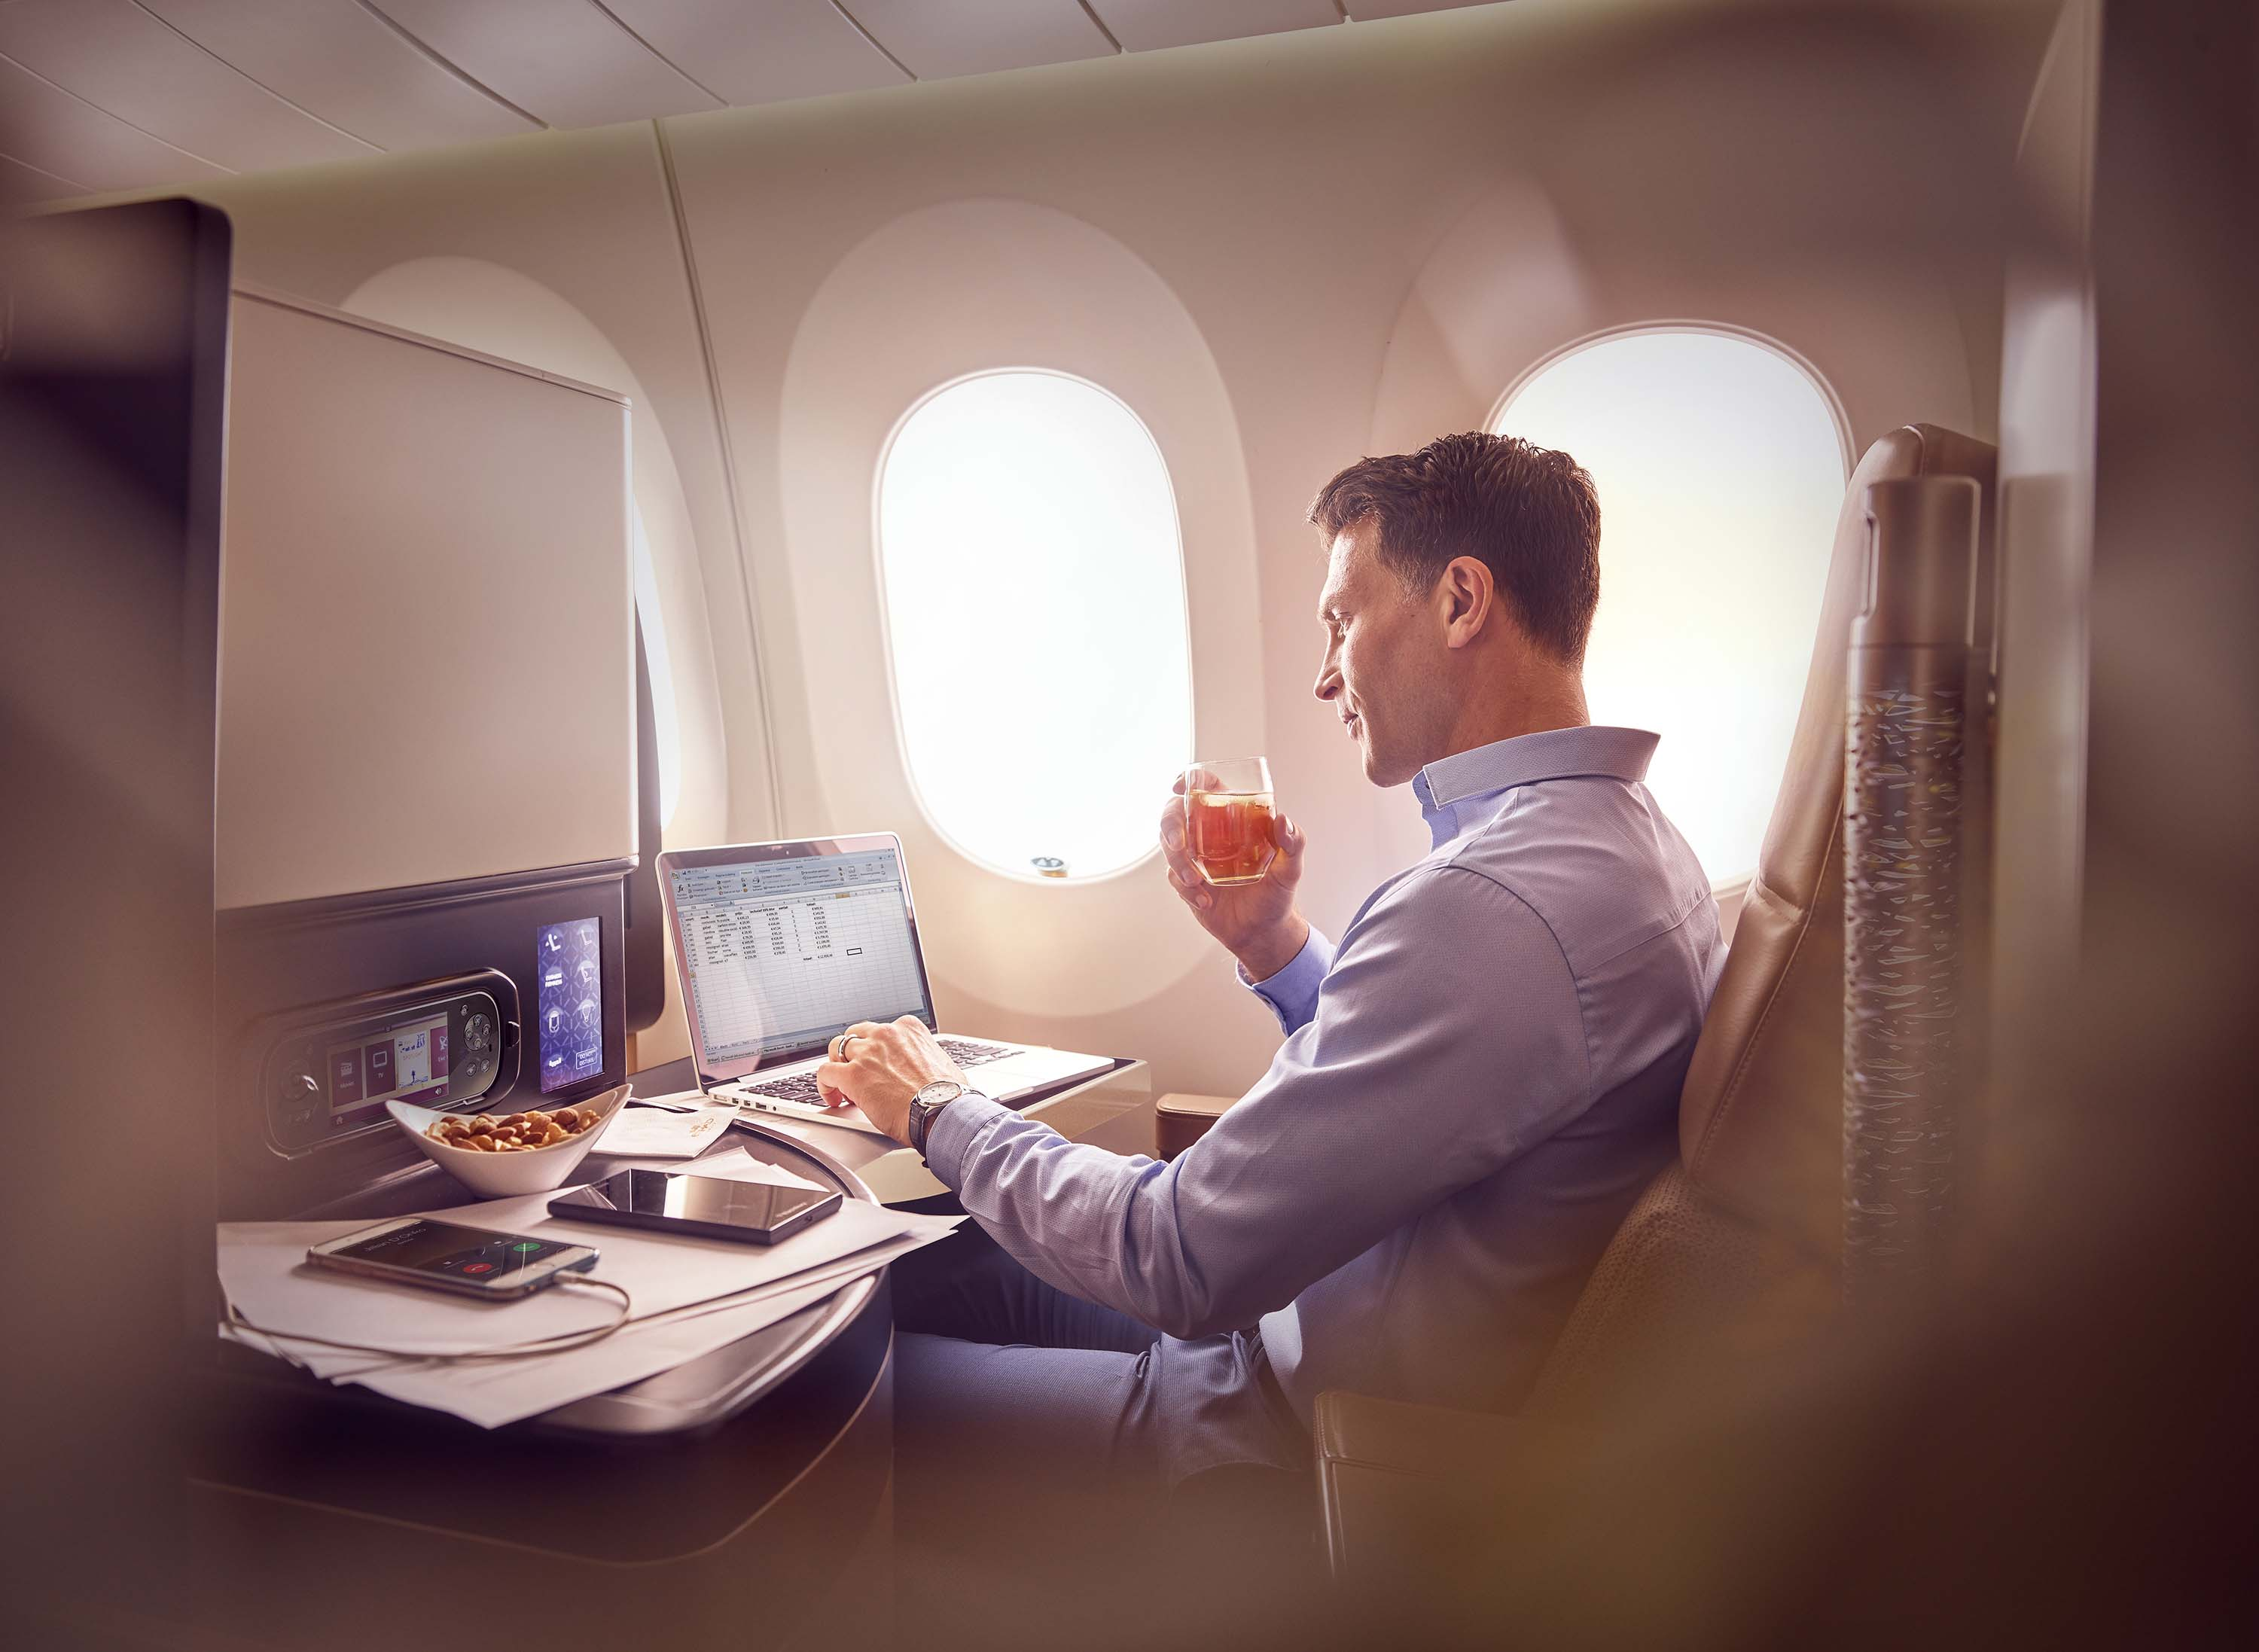 Rome to Asia in Business Class with Etihad Airways starting for €1,741/£1,485